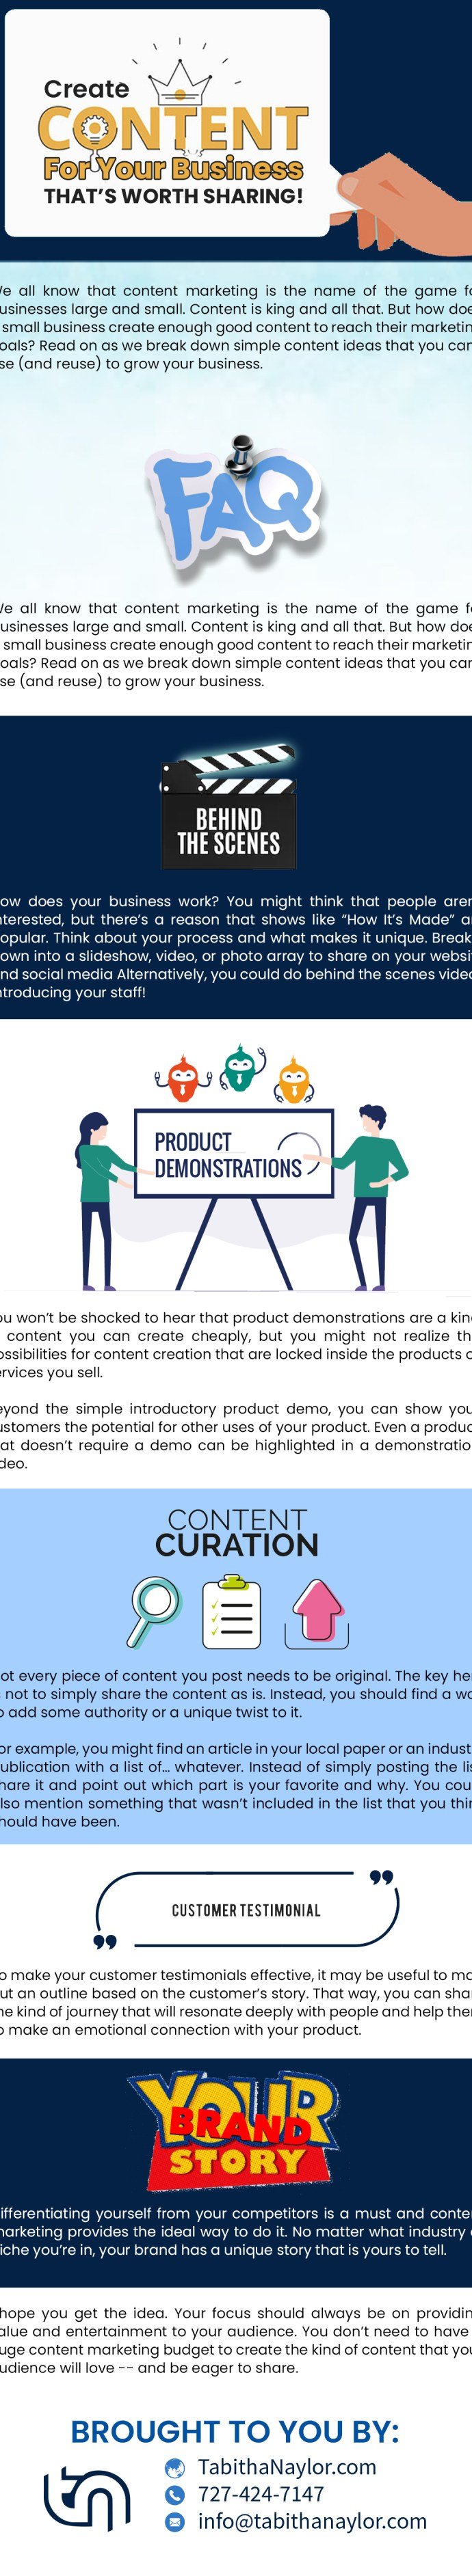 Create-Content-for-Your-Business-Thats-Worth-Sharing-800x3769